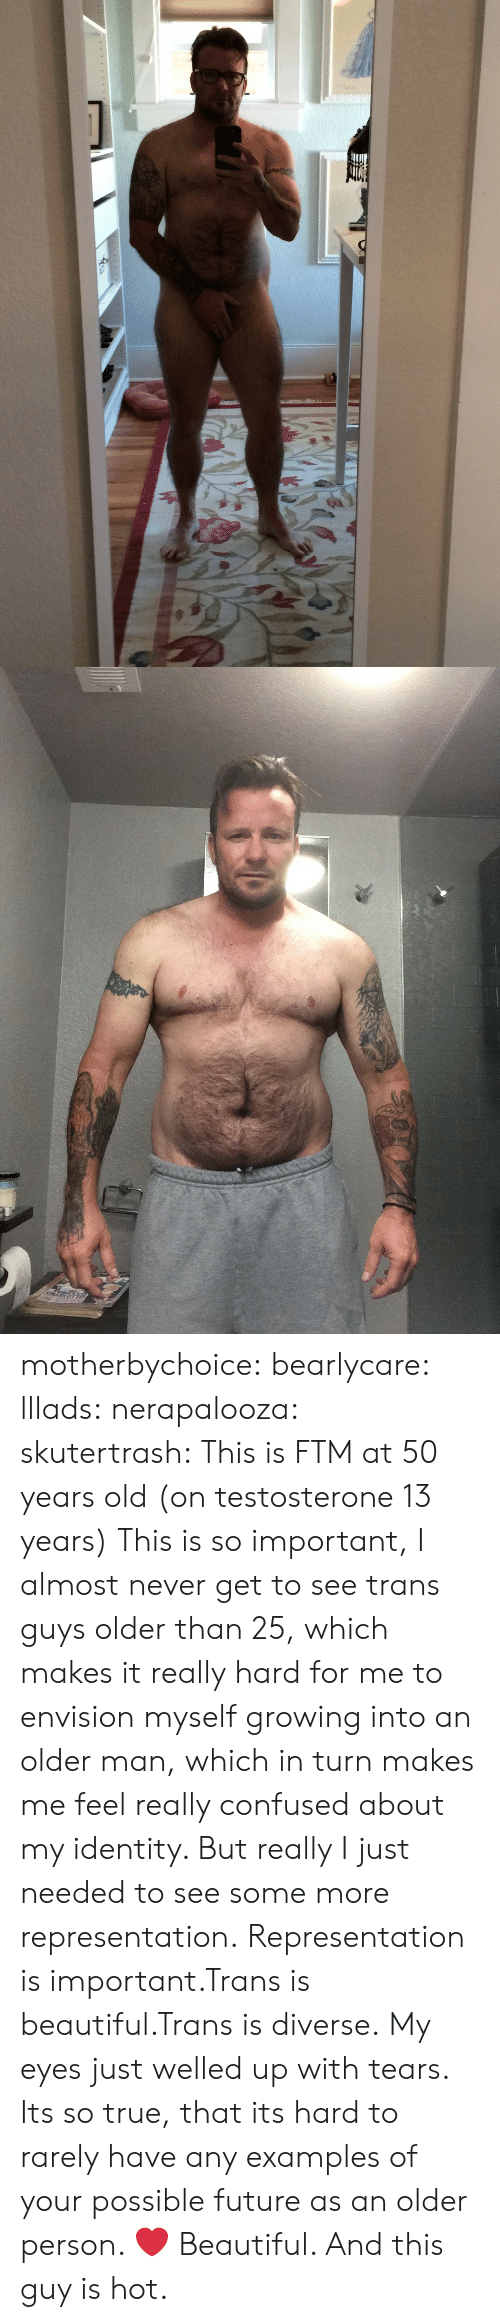 Examples Of: motherbychoice:  bearlycare:  lllads:  nerapalooza:  skutertrash:  This is FTM at 50 years old (on testosterone 13 years)  This is so important, I almost never get to see trans guys older than 25, which makes it really hard for me to envision myself growing into an older man, which in turn makes me feel really confused about my identity. But really I just needed to see some more representation.  Representation is important.Trans is beautiful.Trans is diverse.   My eyes just welled up with tears. Its so true, that its hard to rarely have any examples of your possible future as an older person.  ❤️  Beautiful. And this guy is hot.